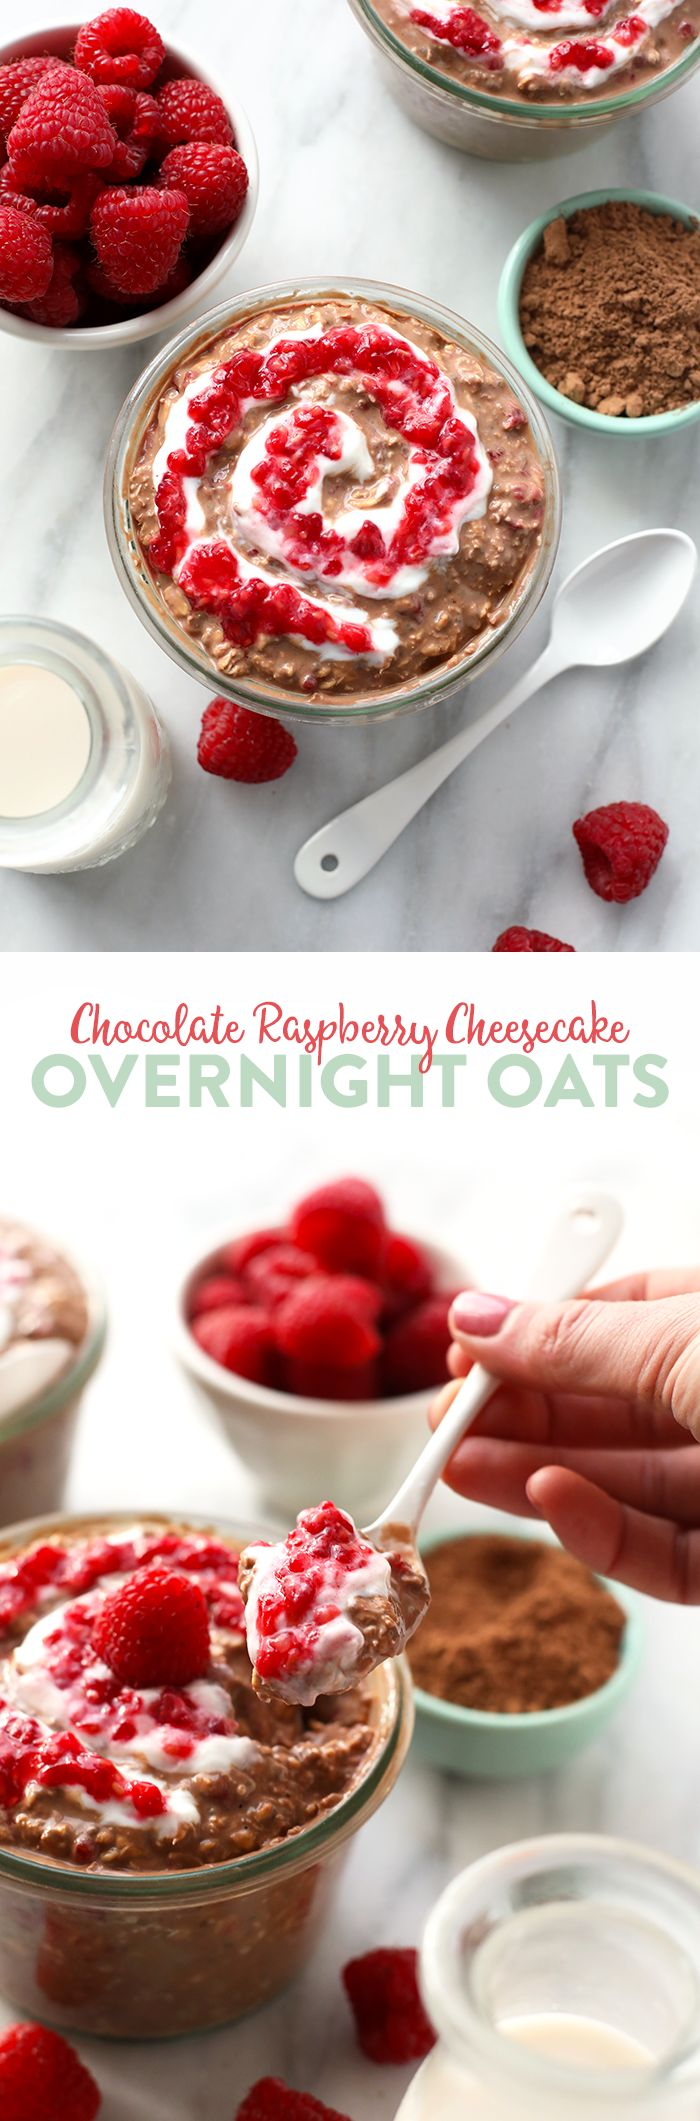 Nothing like cheesecake for breakfast. This Chocolate Raspberry Cheesecake Overnight Oatmeal recipe is prepped in less than 5 minutes so that you can have a healthy breakfast ready to go in seconds in the AM.